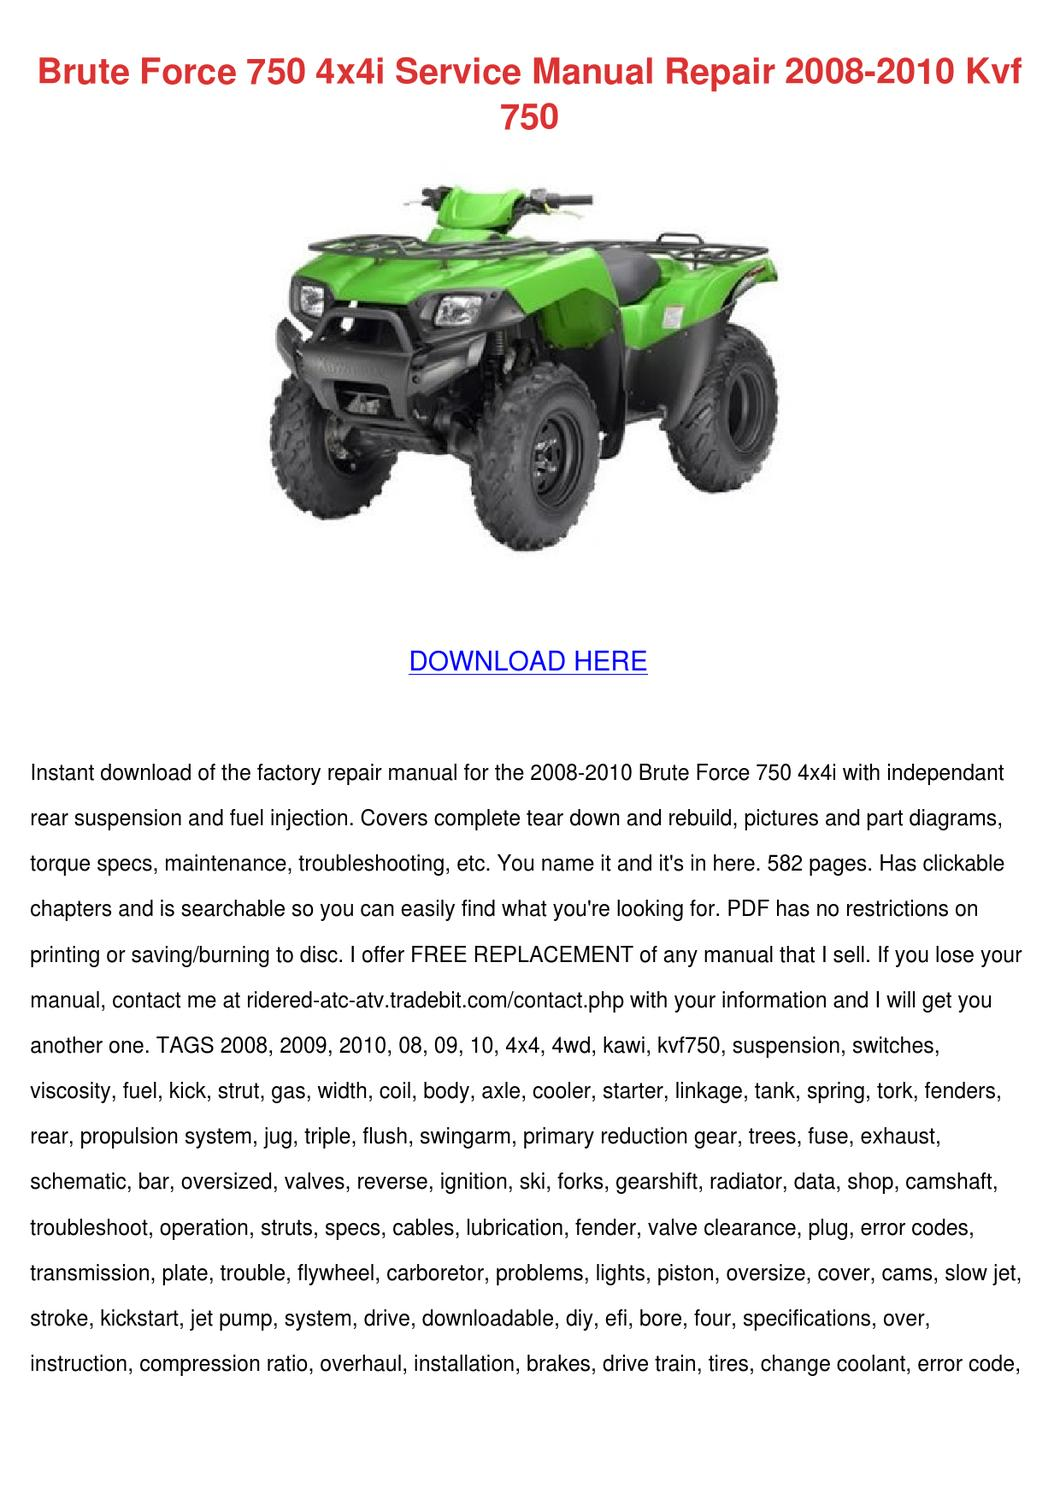 brute force 750 service manual free download